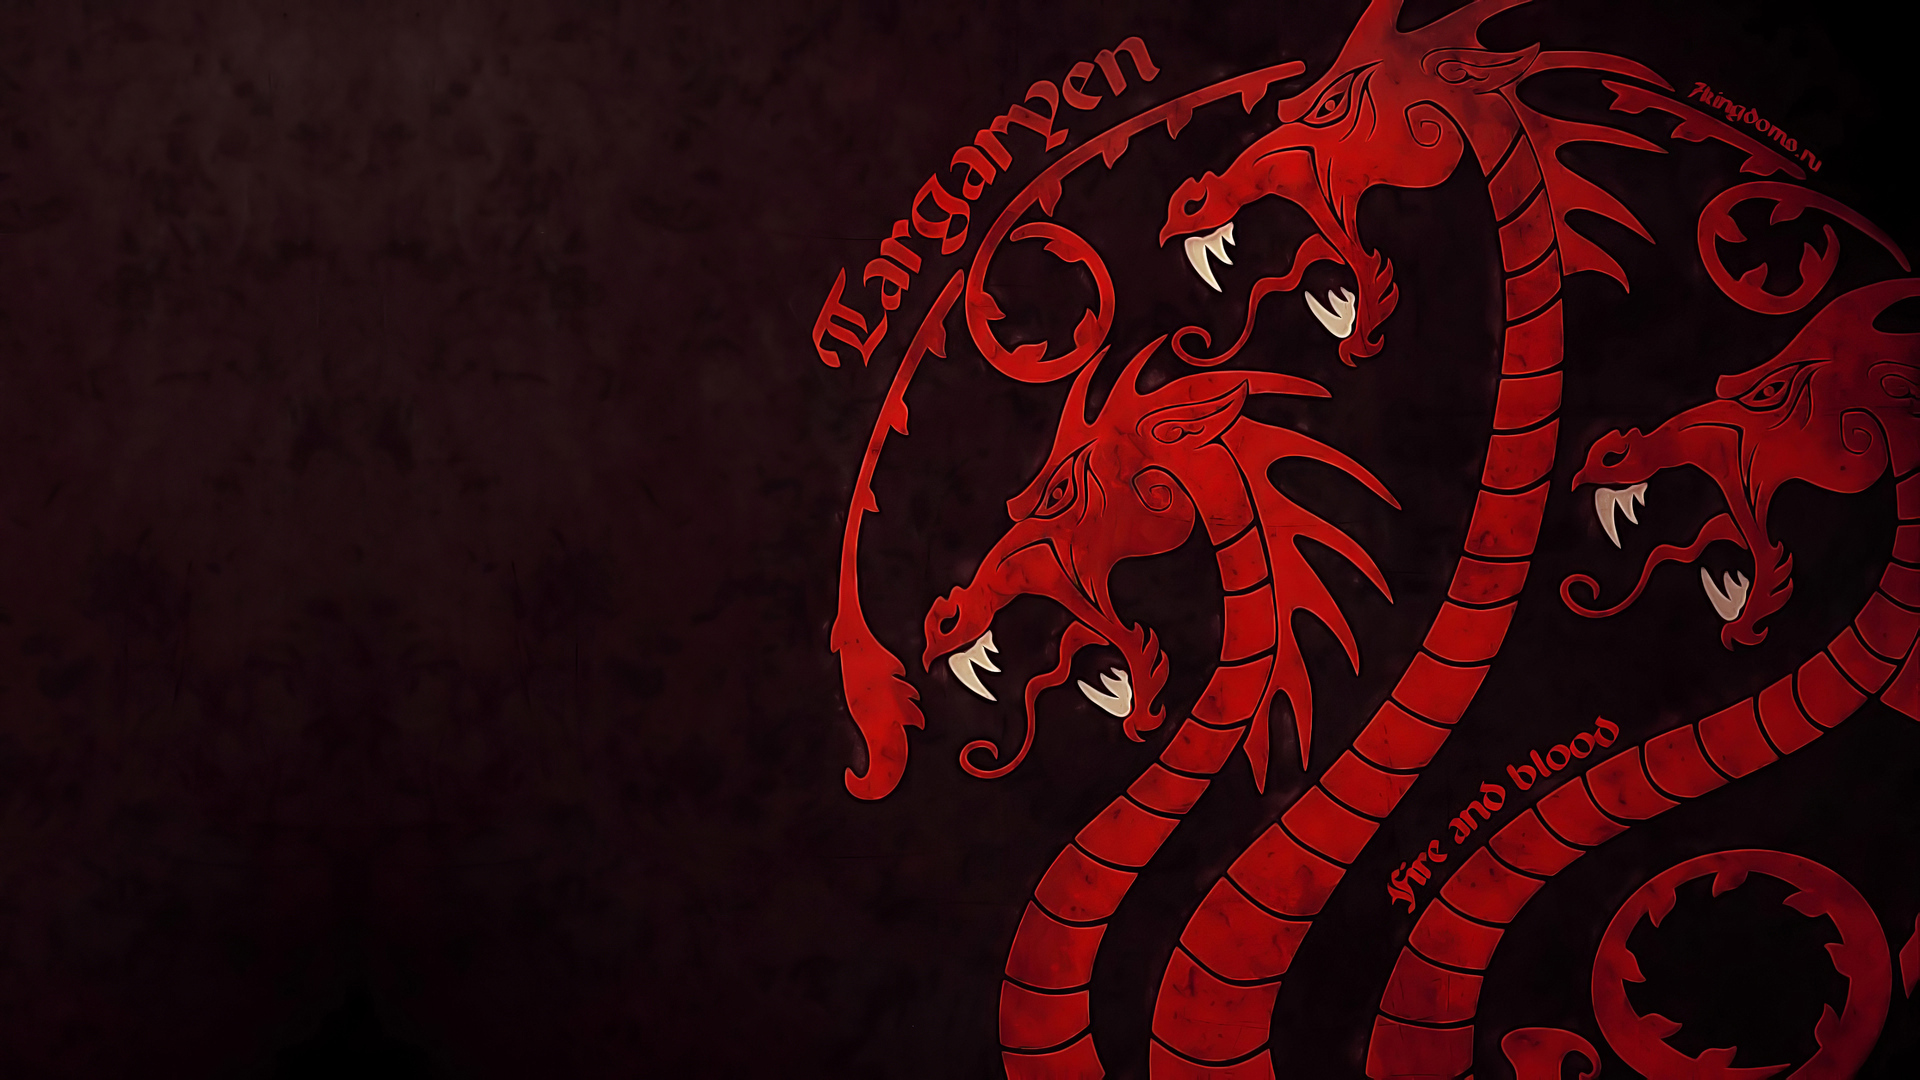 1920x1080 Game Of Thrones House Targaryen 4k Laptop Full Hd 1080p Hd 4k Wallpapers Images Backgrounds Photos And Pictures